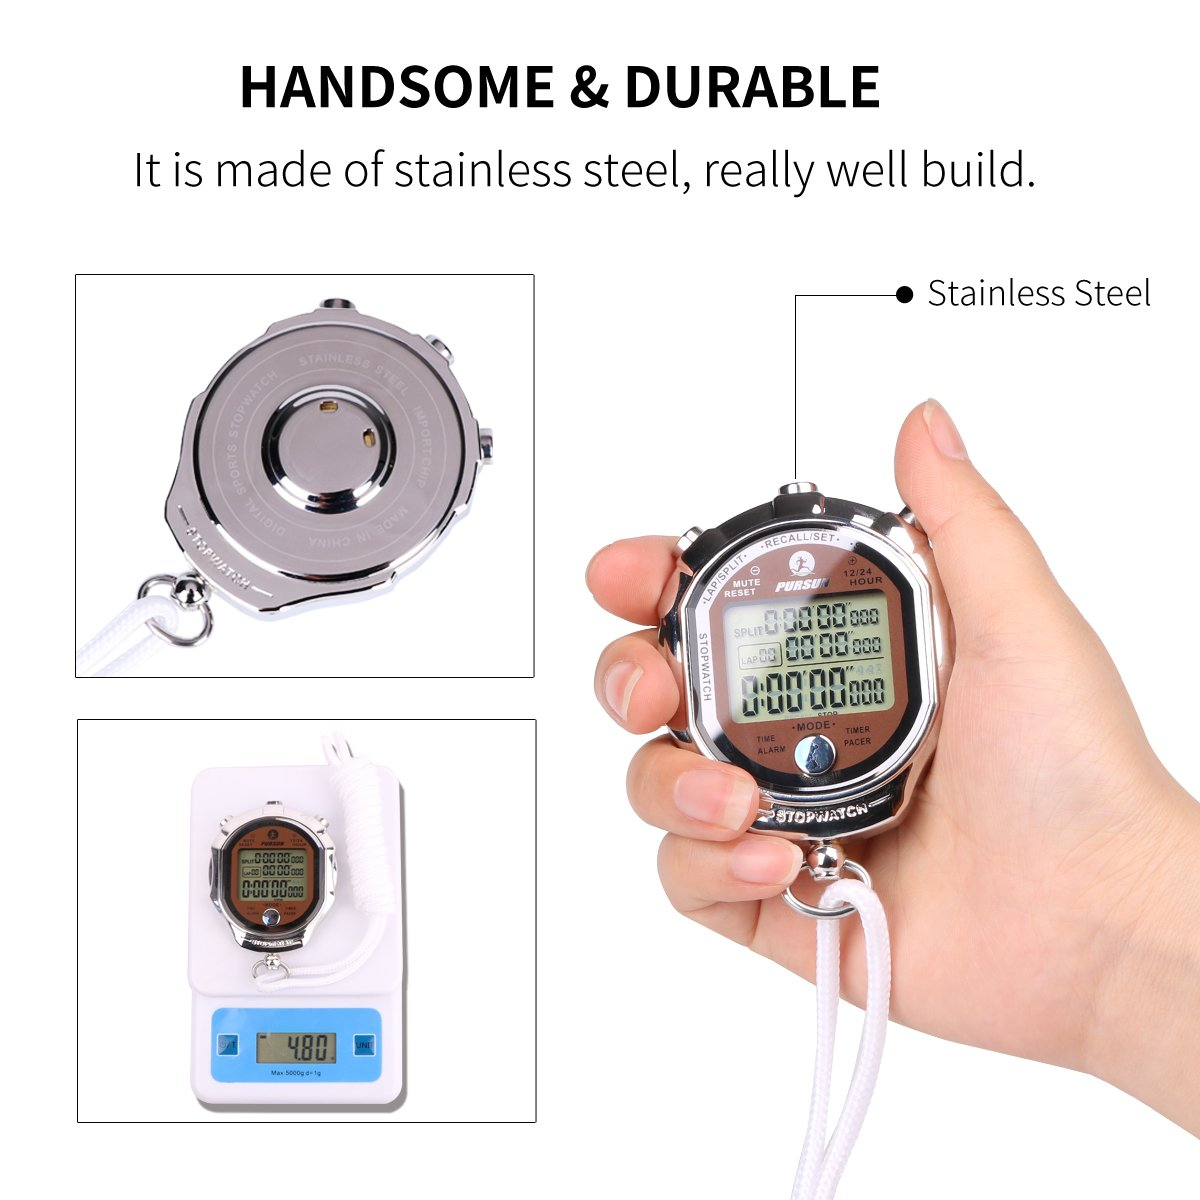 AIMILAR Stainless Steel Digital Sports Stopwatch Timer Alarm Clock Large Display and Button with Lanyard for Men Women Trainers Coaching Training by AIMILAR (Image #2)